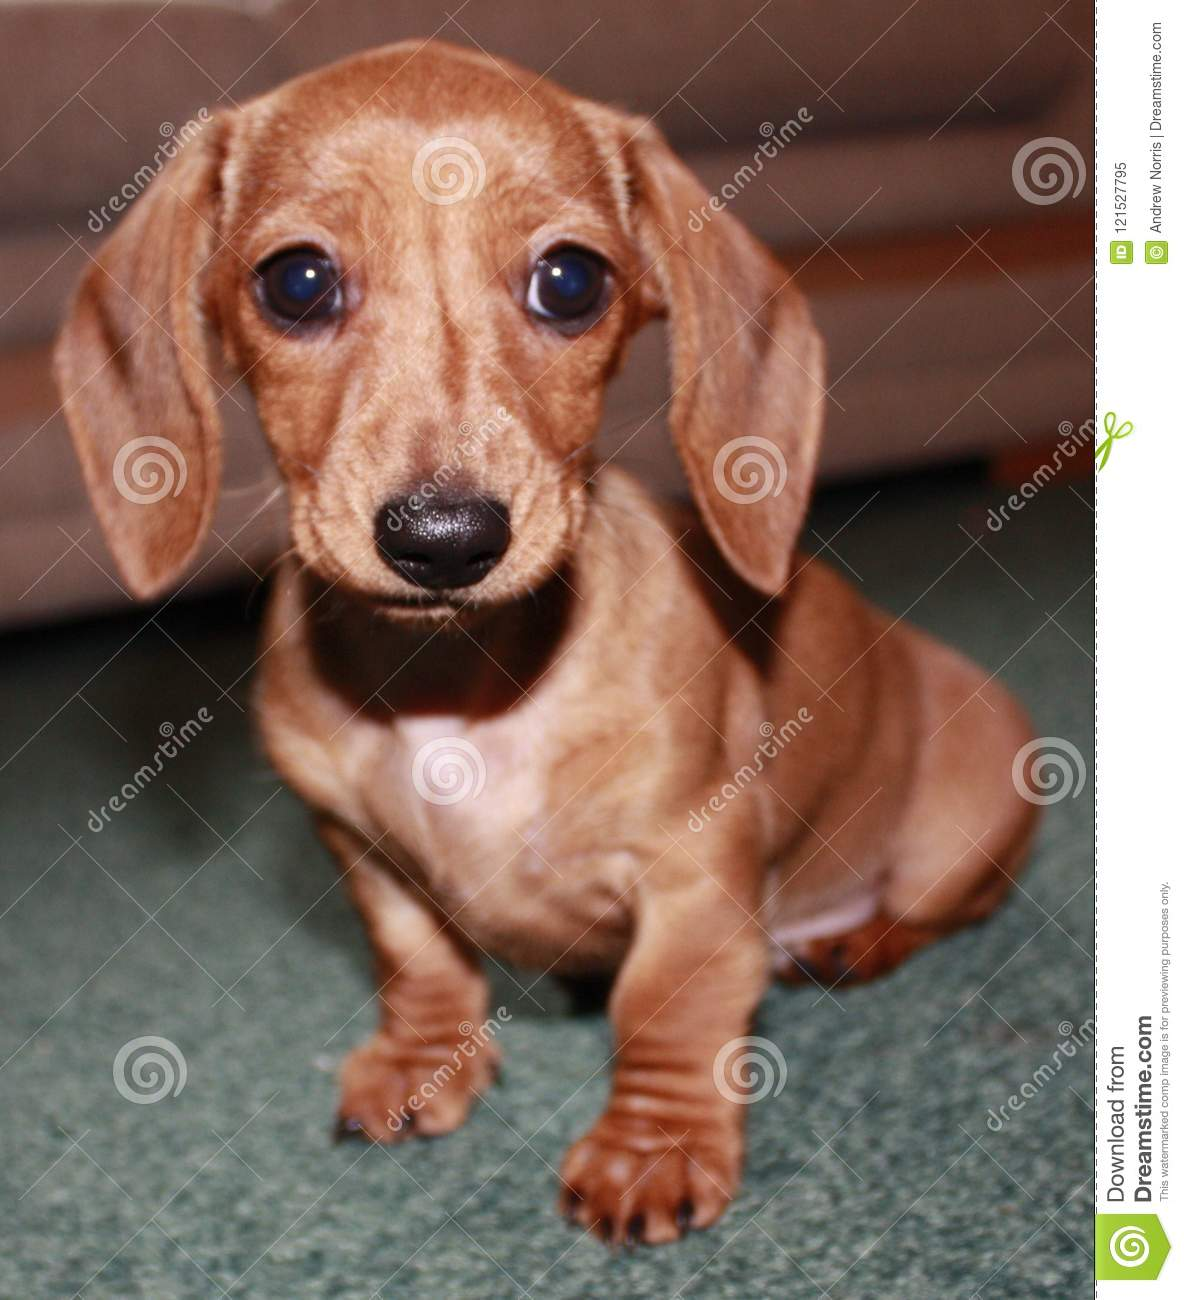 Miniature Dachshund Puppy Stock Image Image Of Black 121527795